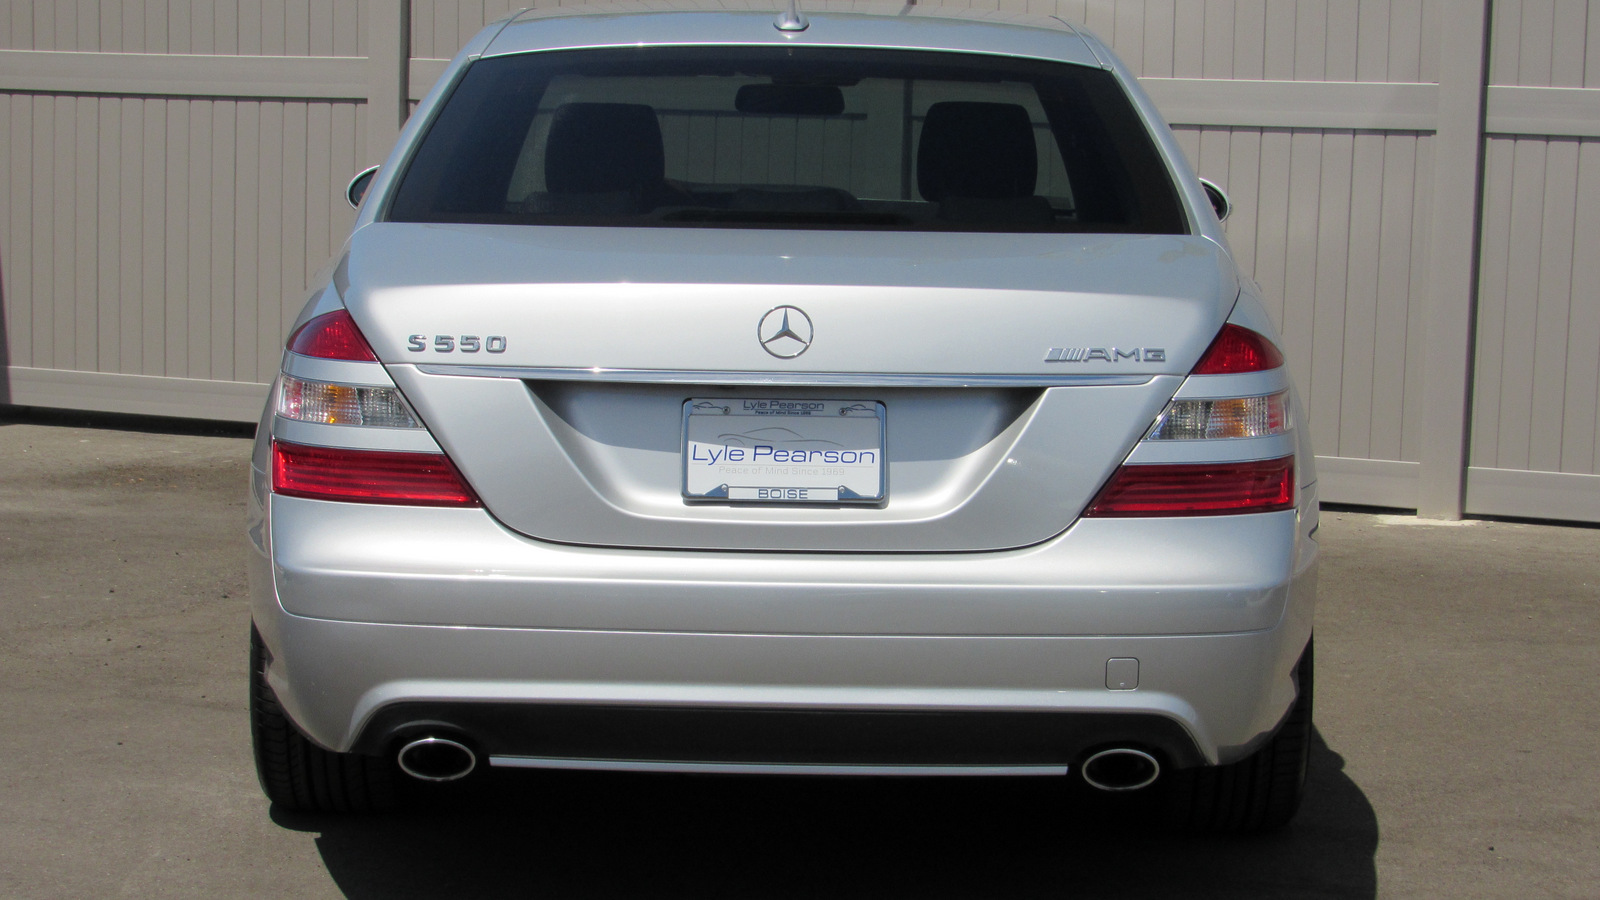 Pre-Owned 2008 Mercedes-Benz S-Class 4dr Sdn 5.5L V8 RWD